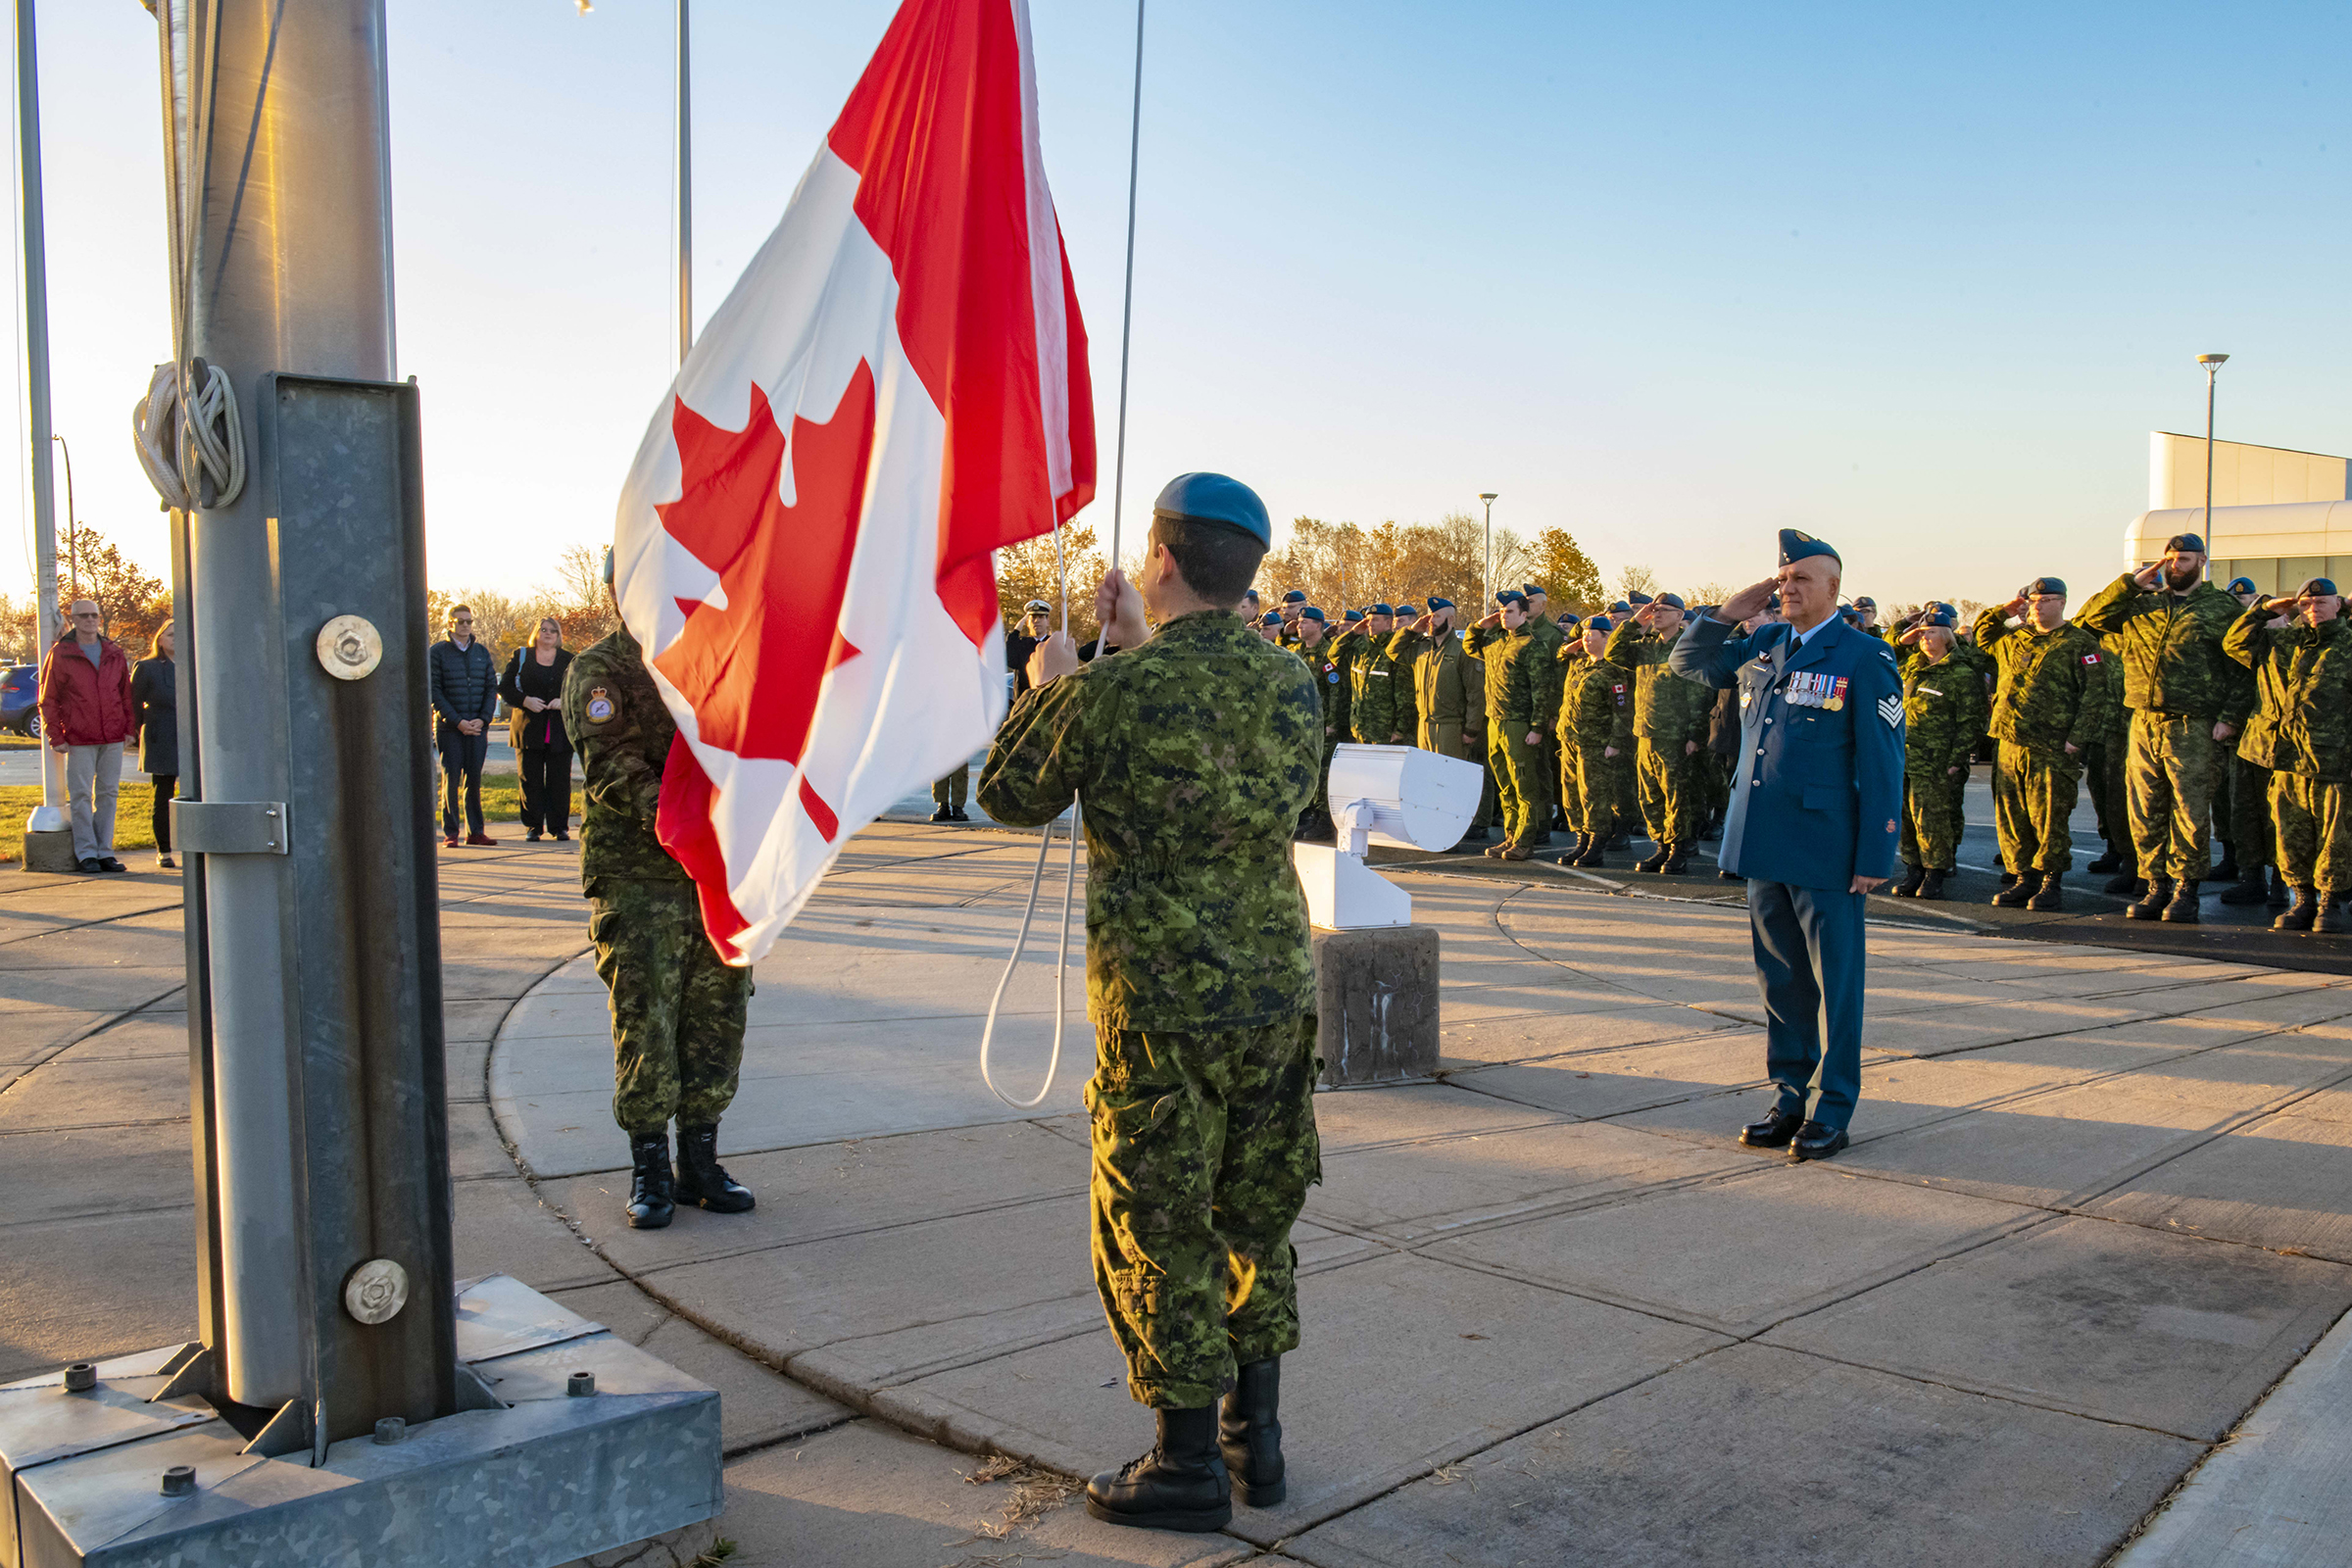 In the foreground, a person wearing a camouflage pattern uniform raises a Canadian flag, while a man wearing an RCAF dress uniform salutes and additional personnel in the background salute.